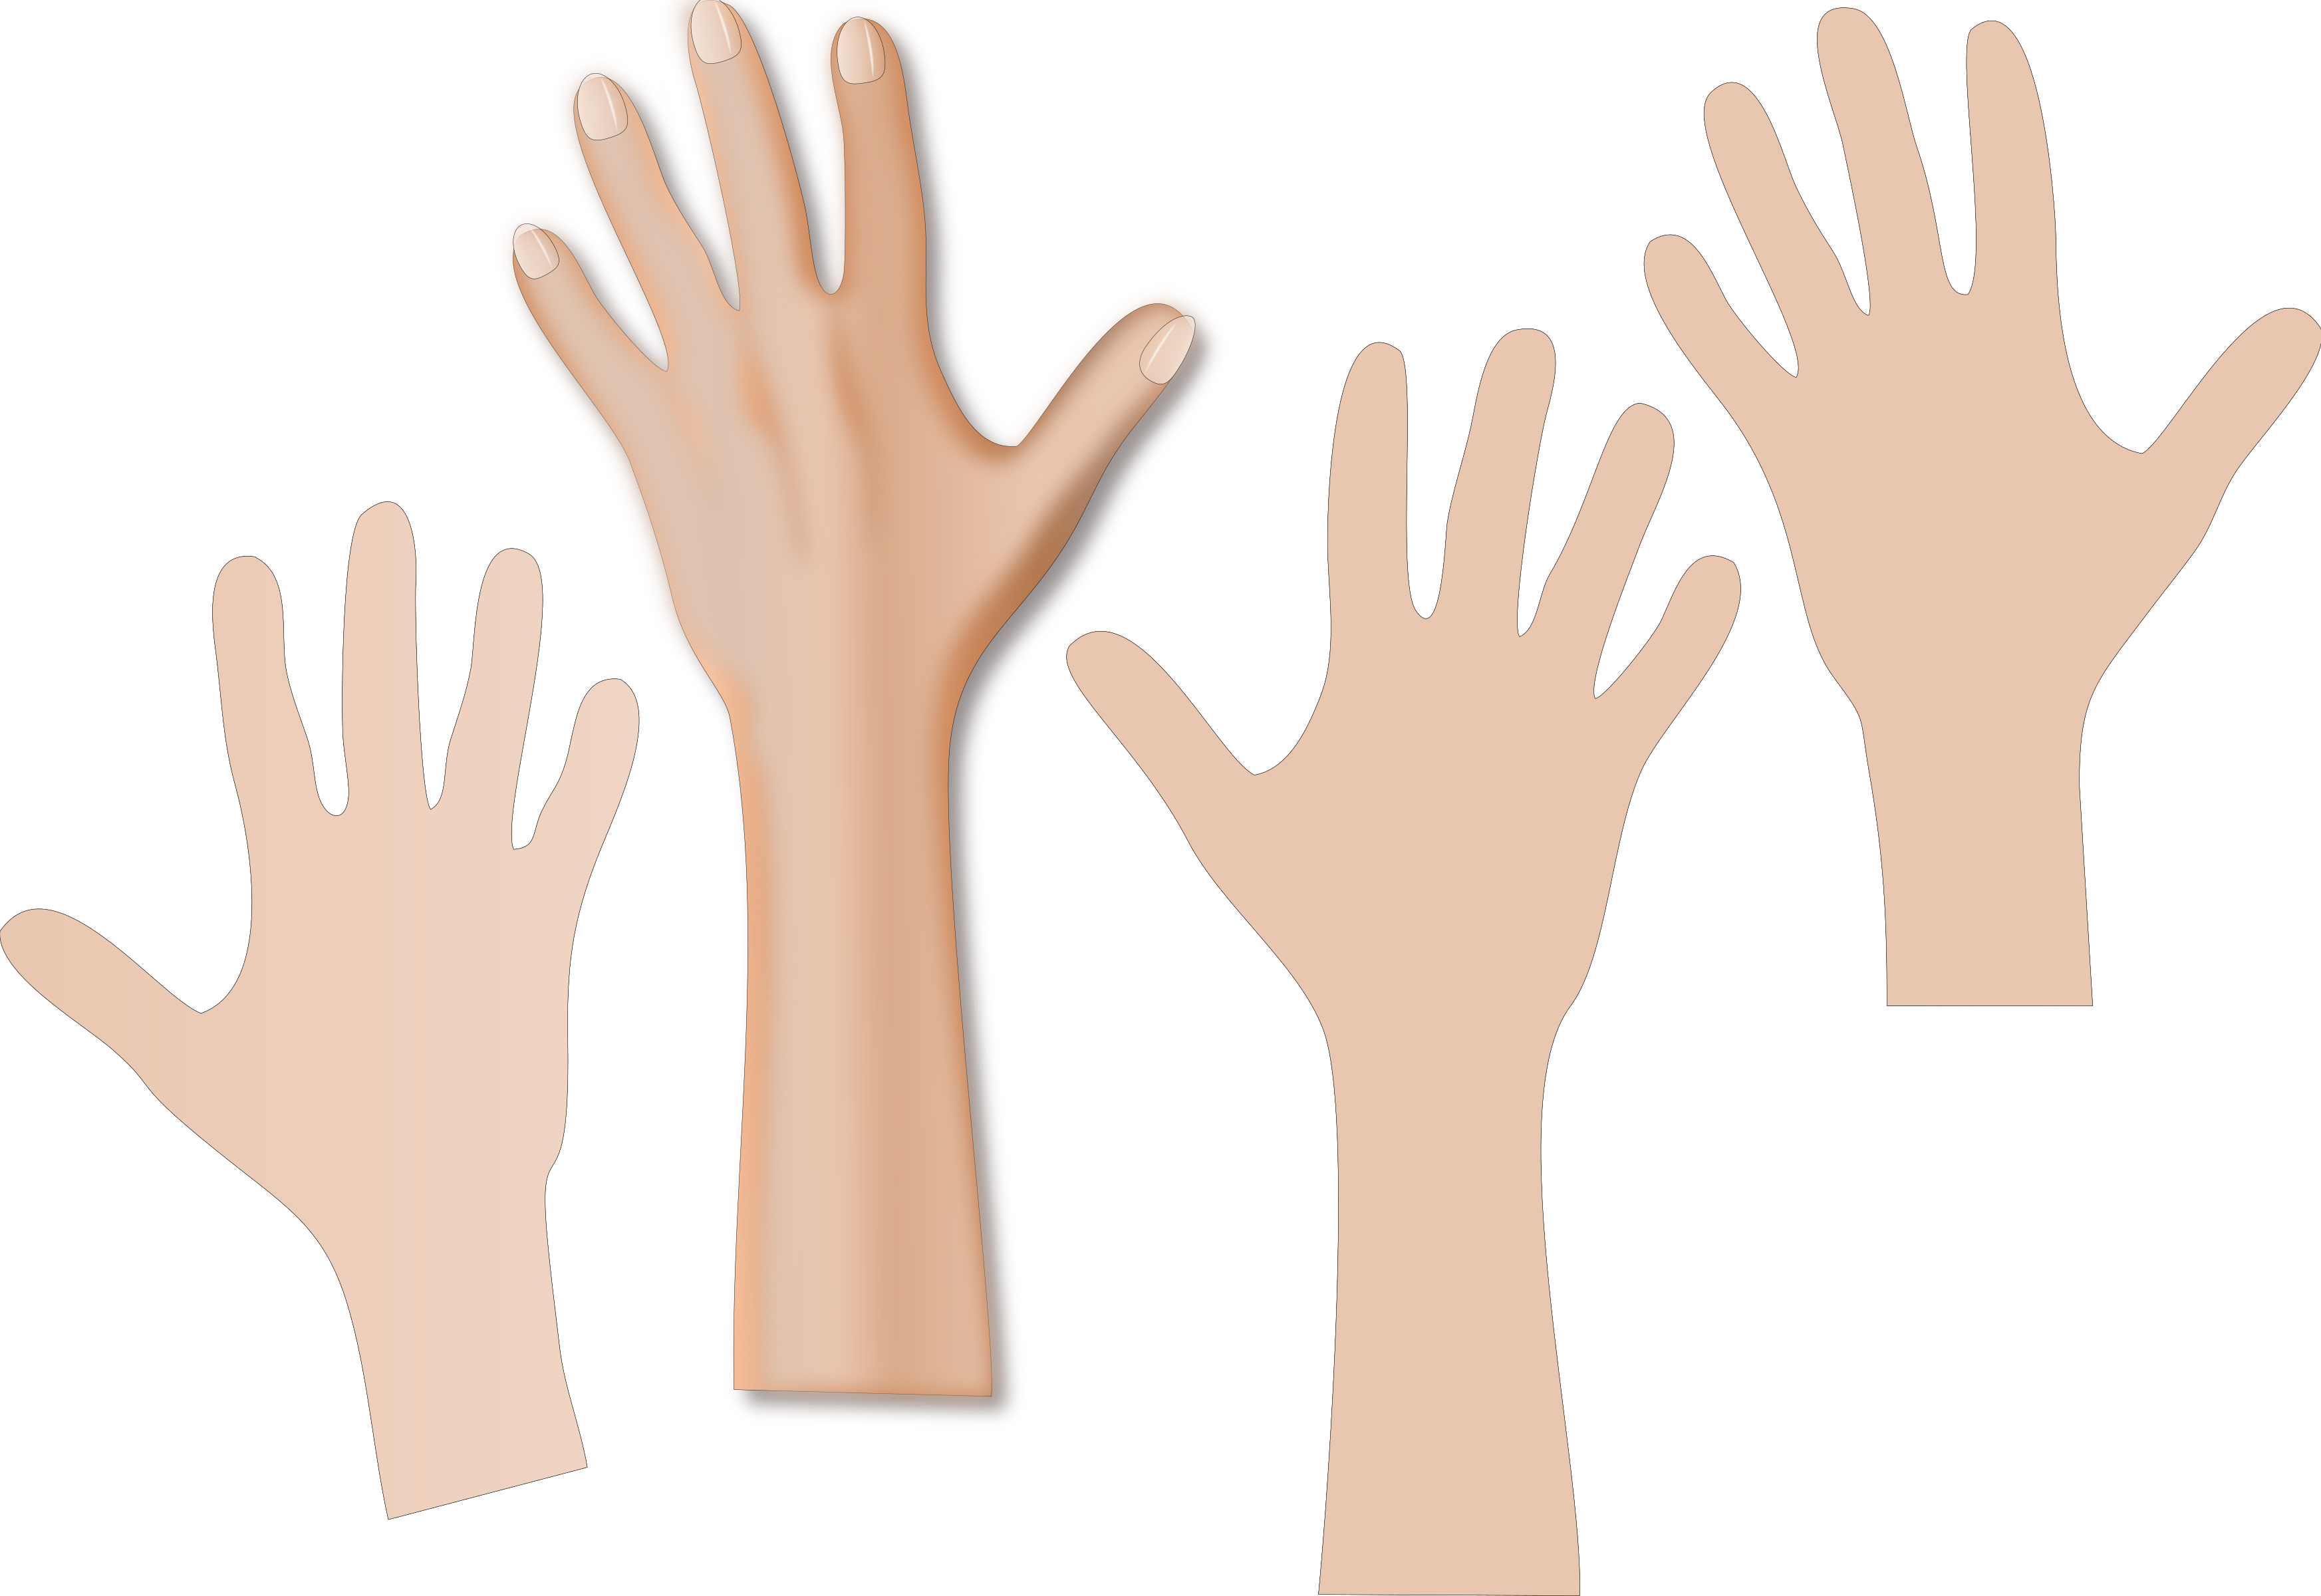 clipart hands reaching with skin color